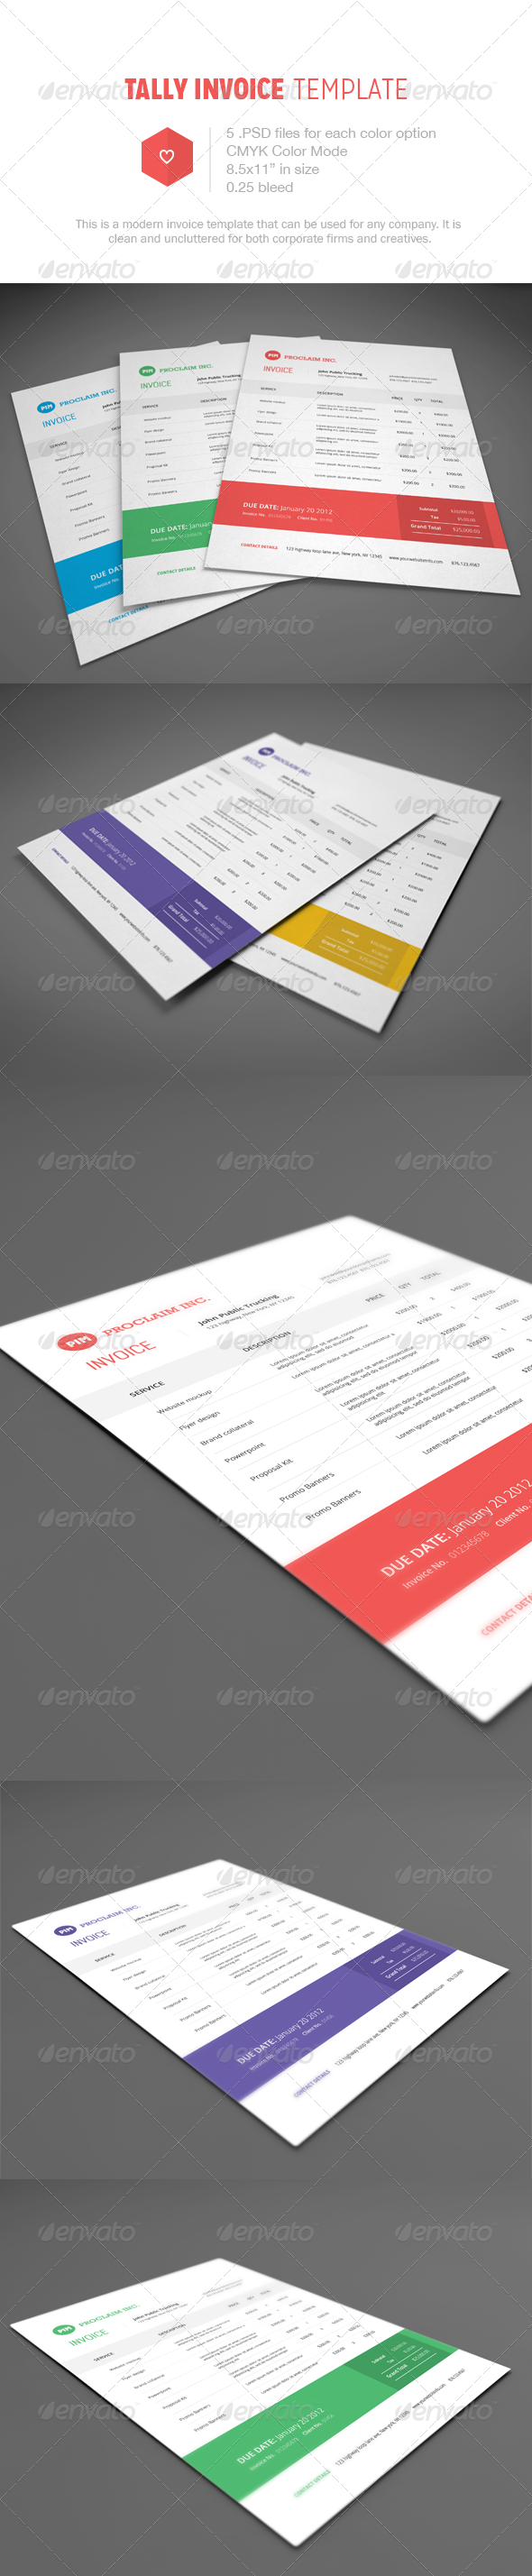 GraphicRiver Tally Invoice Template 5377359